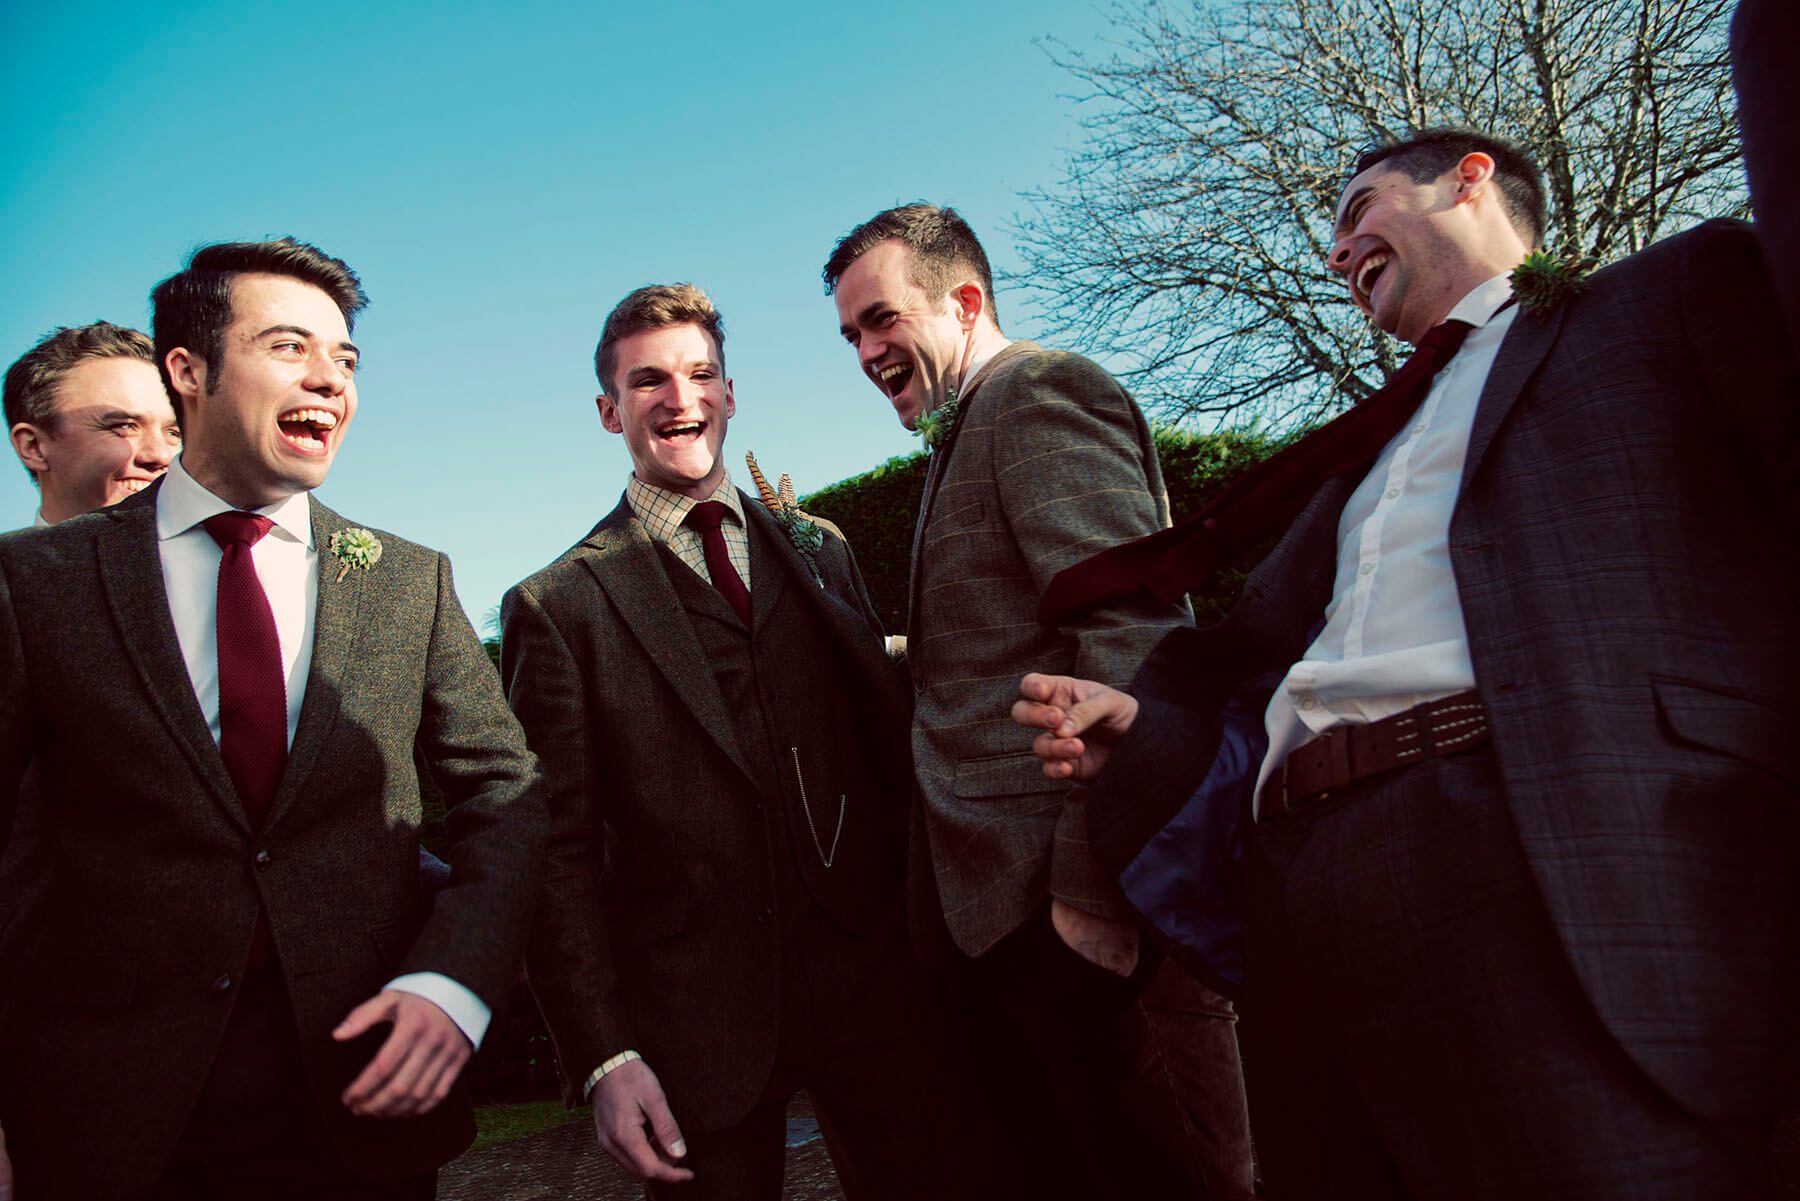 Groom and friends laughing together outside